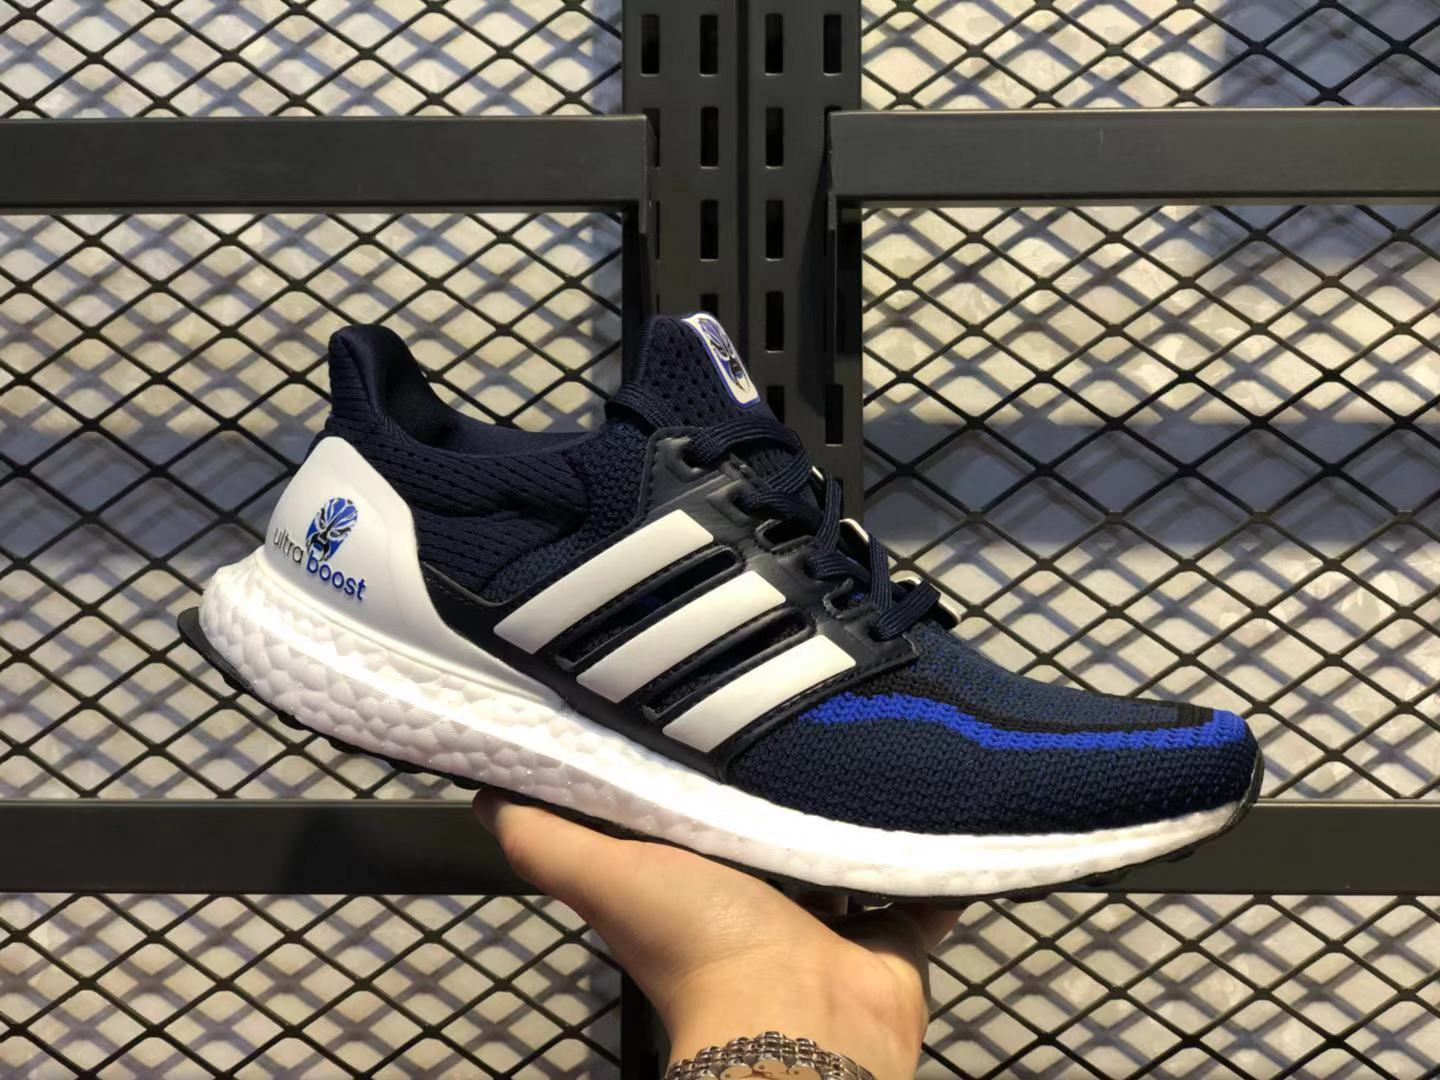 Adidas Ultra Boost Black/White-Laser Blue Running Shoes Online Buy